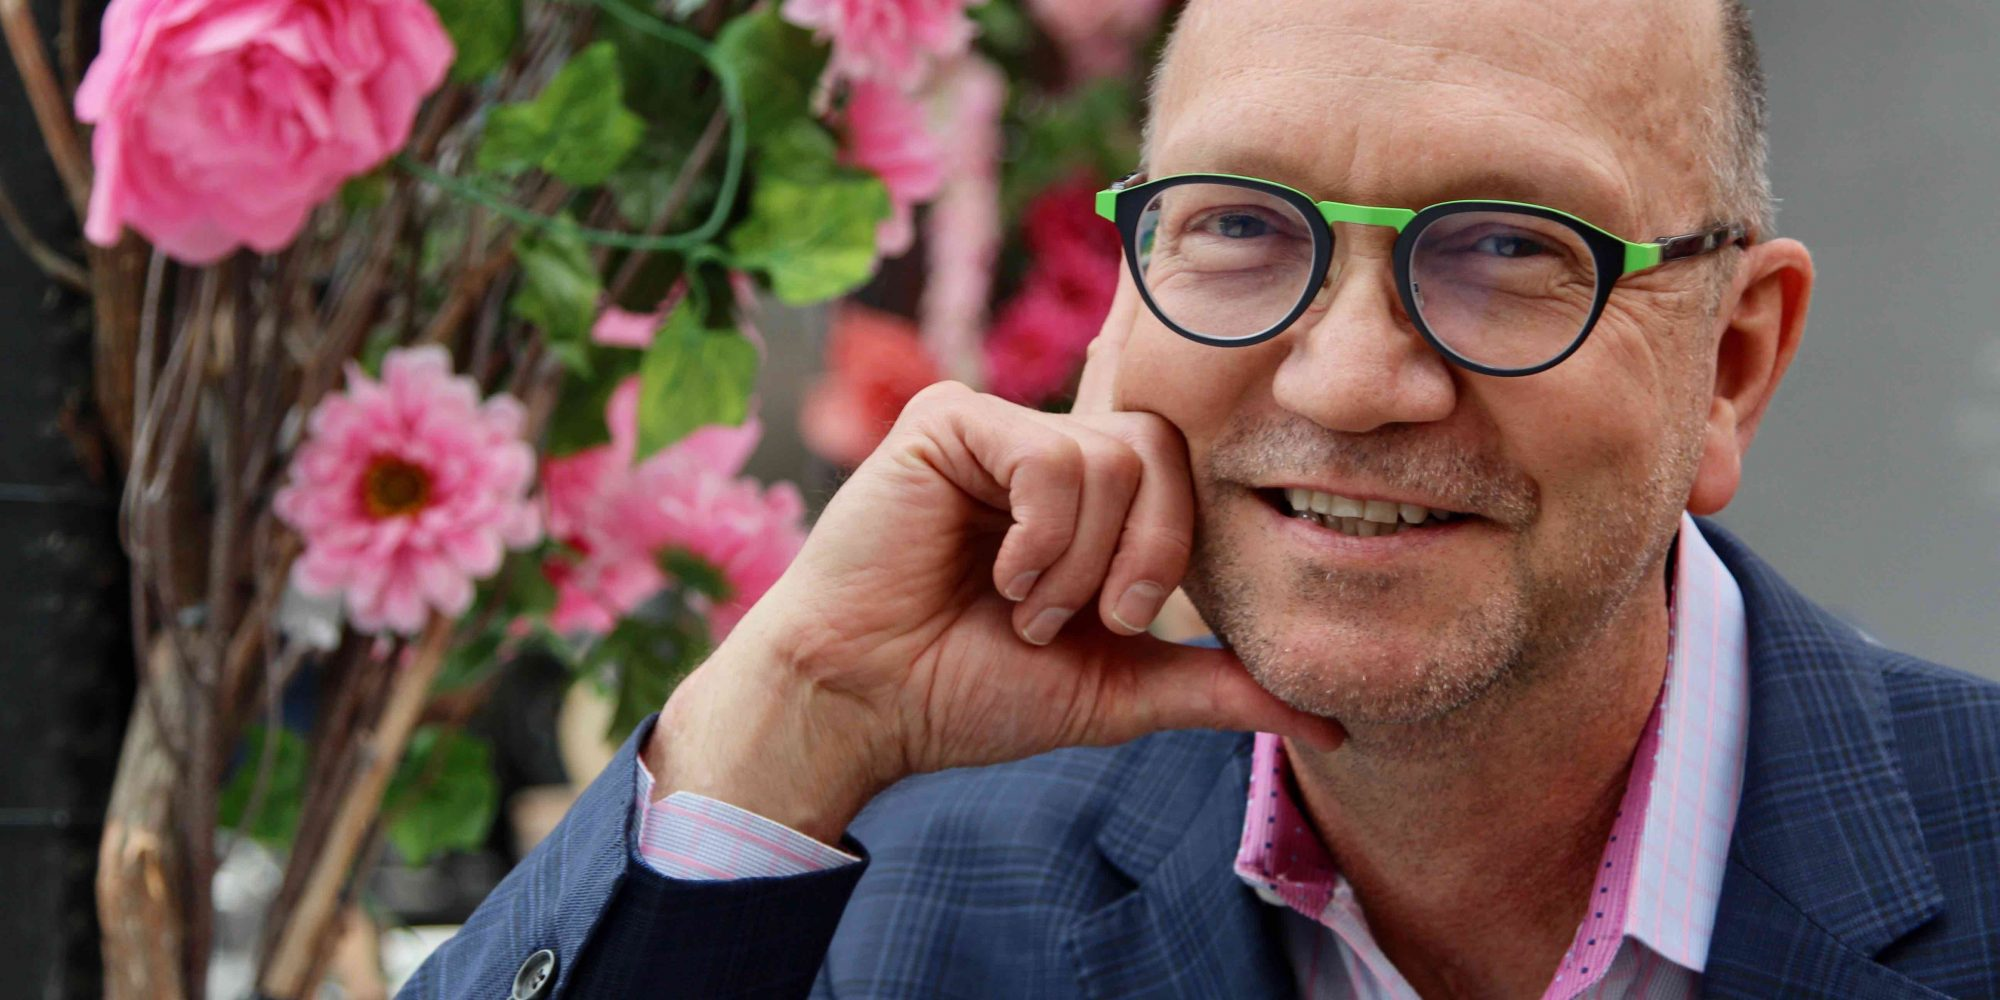 How Clarisonic Co-Founder Robb Akridge Is Prepping For His Return To The Beauty Device Category